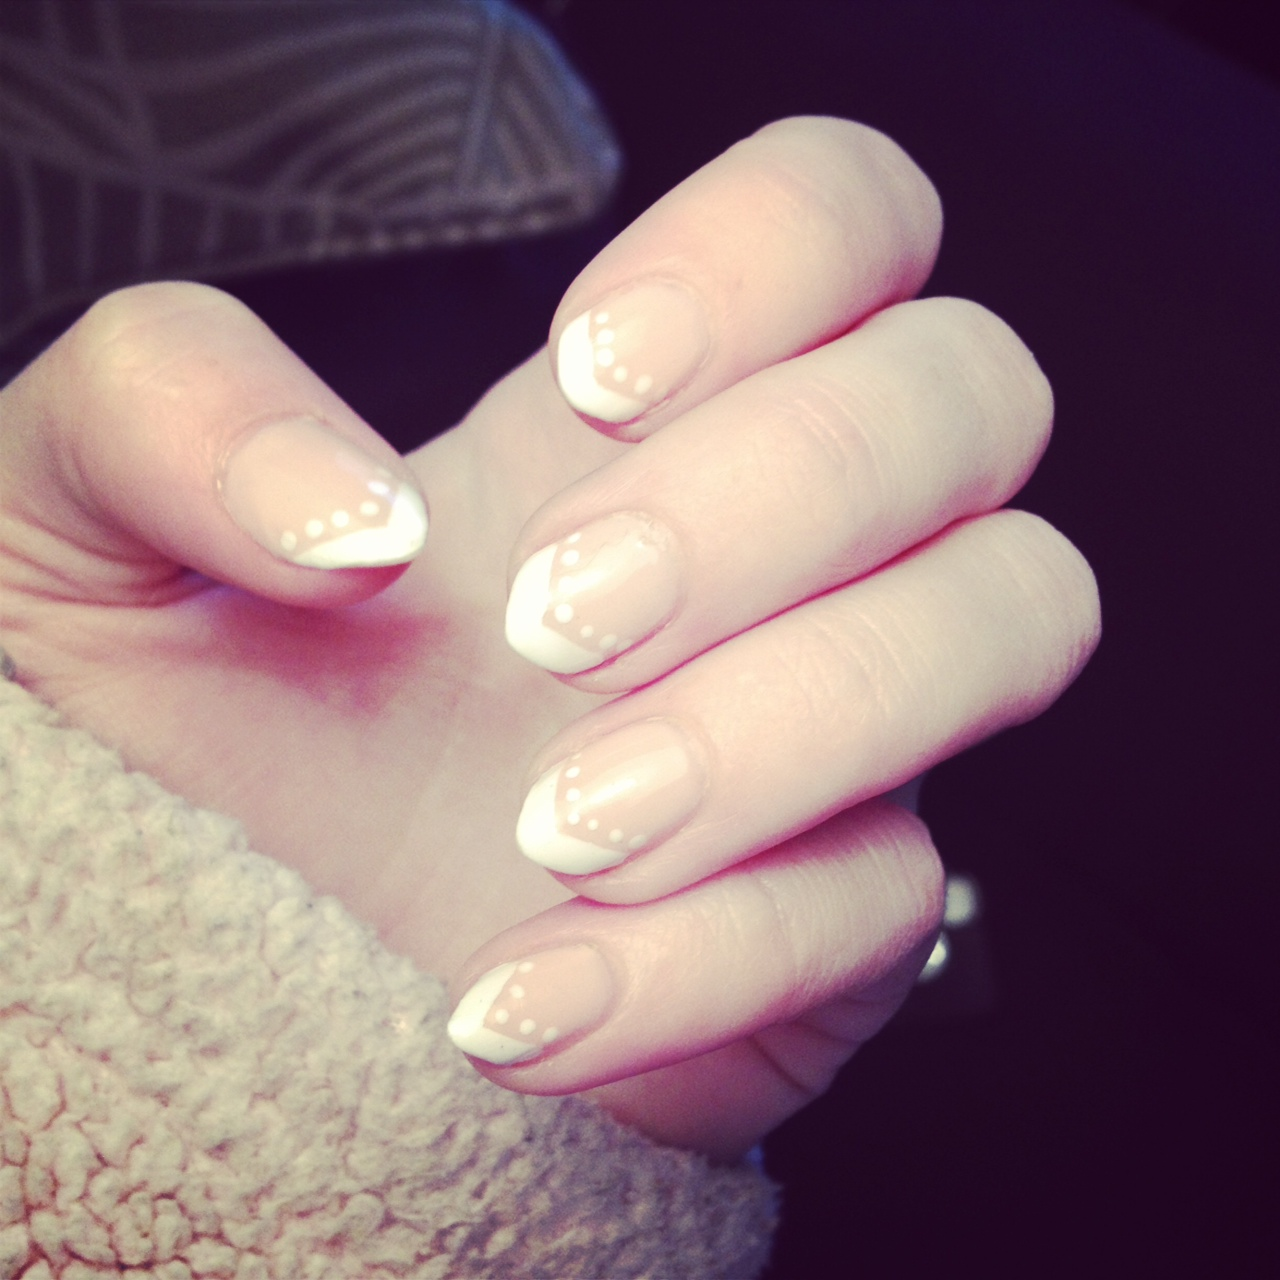 stiletto nails tips photo - 1